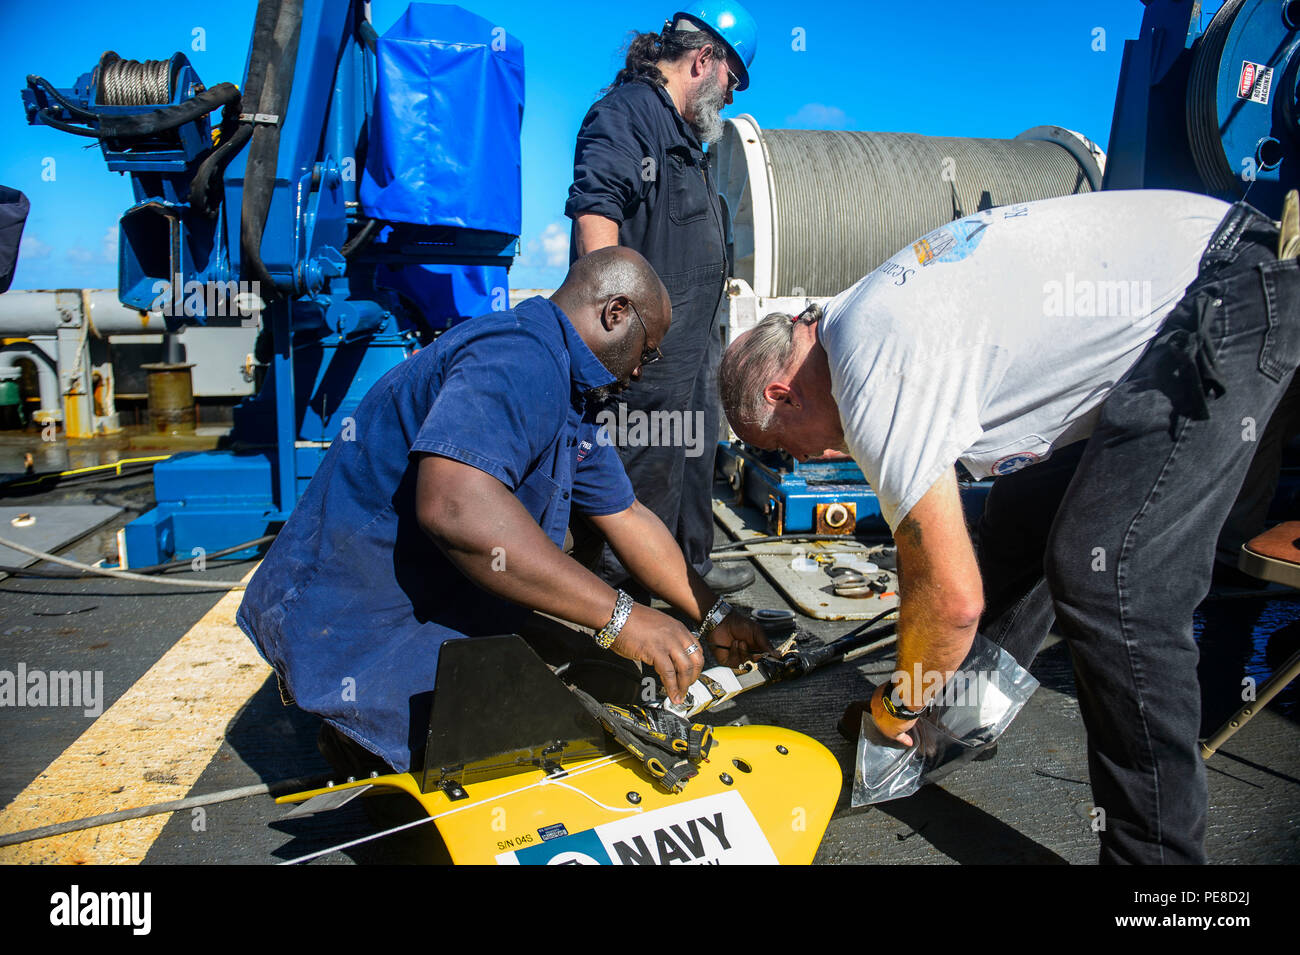 151023-N-RZ218-203   BAHAMAS (Oct. 23, 2015) Contractors with Phoenix International Incorporated prepare a tow pinger locater 25 (TPL 25) for the upcoming salvage mission aboard USNS Apache (T-ATF 172). USNS Apache departed Norfolk, Va., Oct. 19, to begin searching for wreckage from the missing U.S. Flagged merchant vessel El Faro. The ship is equipped with several pieces of underwater search equipment, including a voyage data recorder locator, side-scan sonar and an underwater remote operated vehicle. The Navy's mission will be to first locate the ship and, if possible, to retrieve the voyage - Stock Image